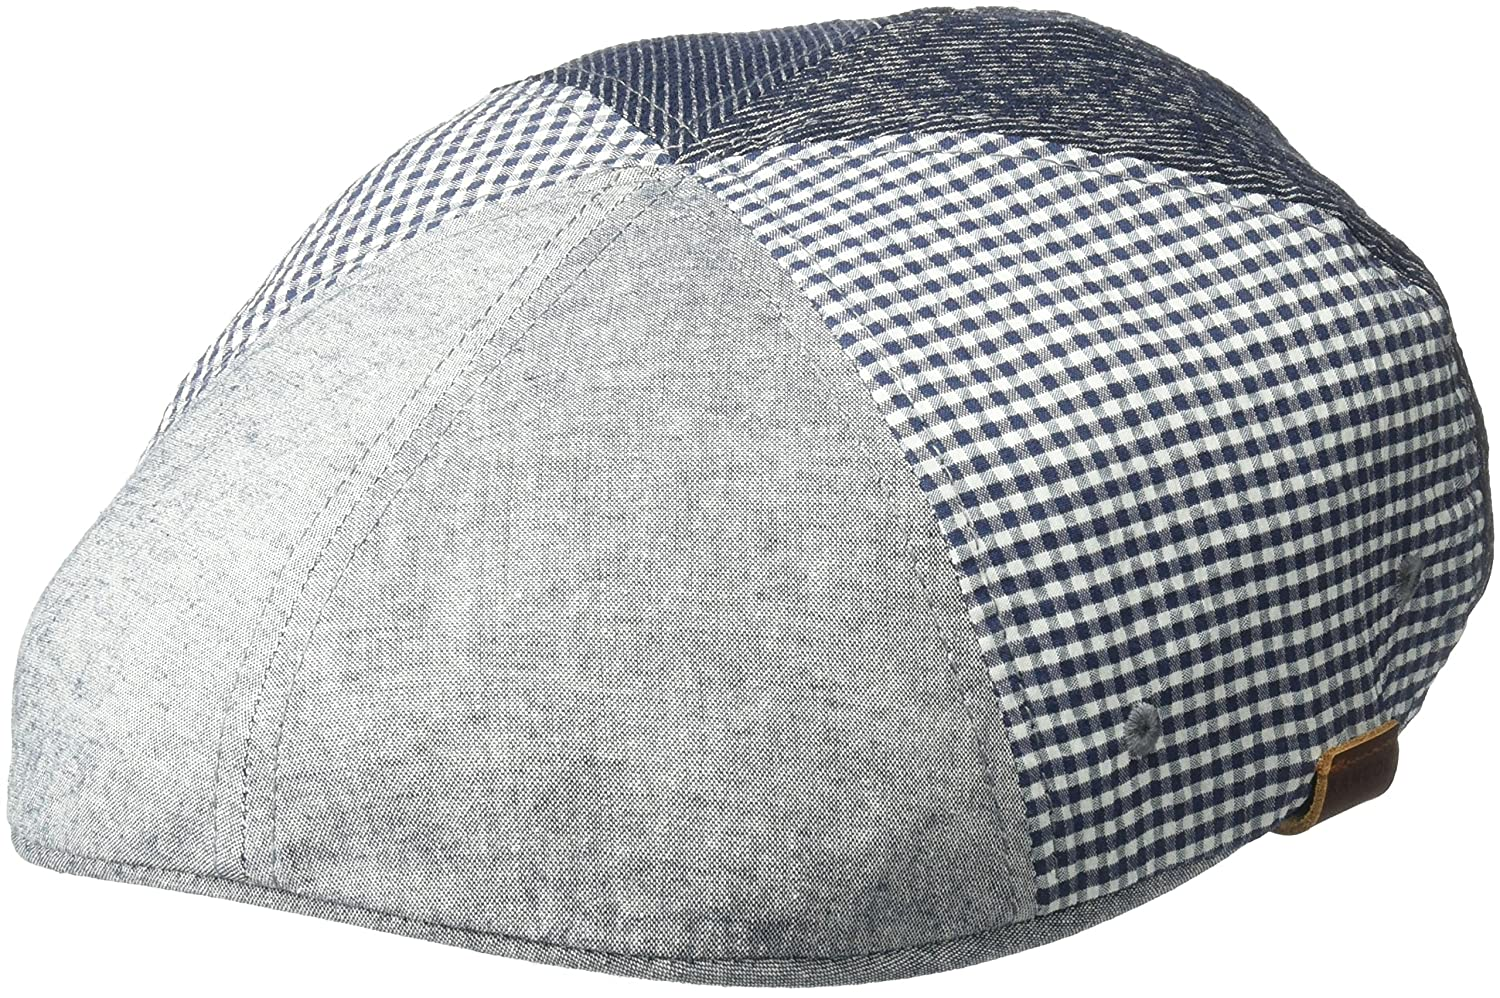 39da7ed7d2f Kangol Men s Pattern Flexfit 504 Ivy Cap at Amazon Men s Clothing store